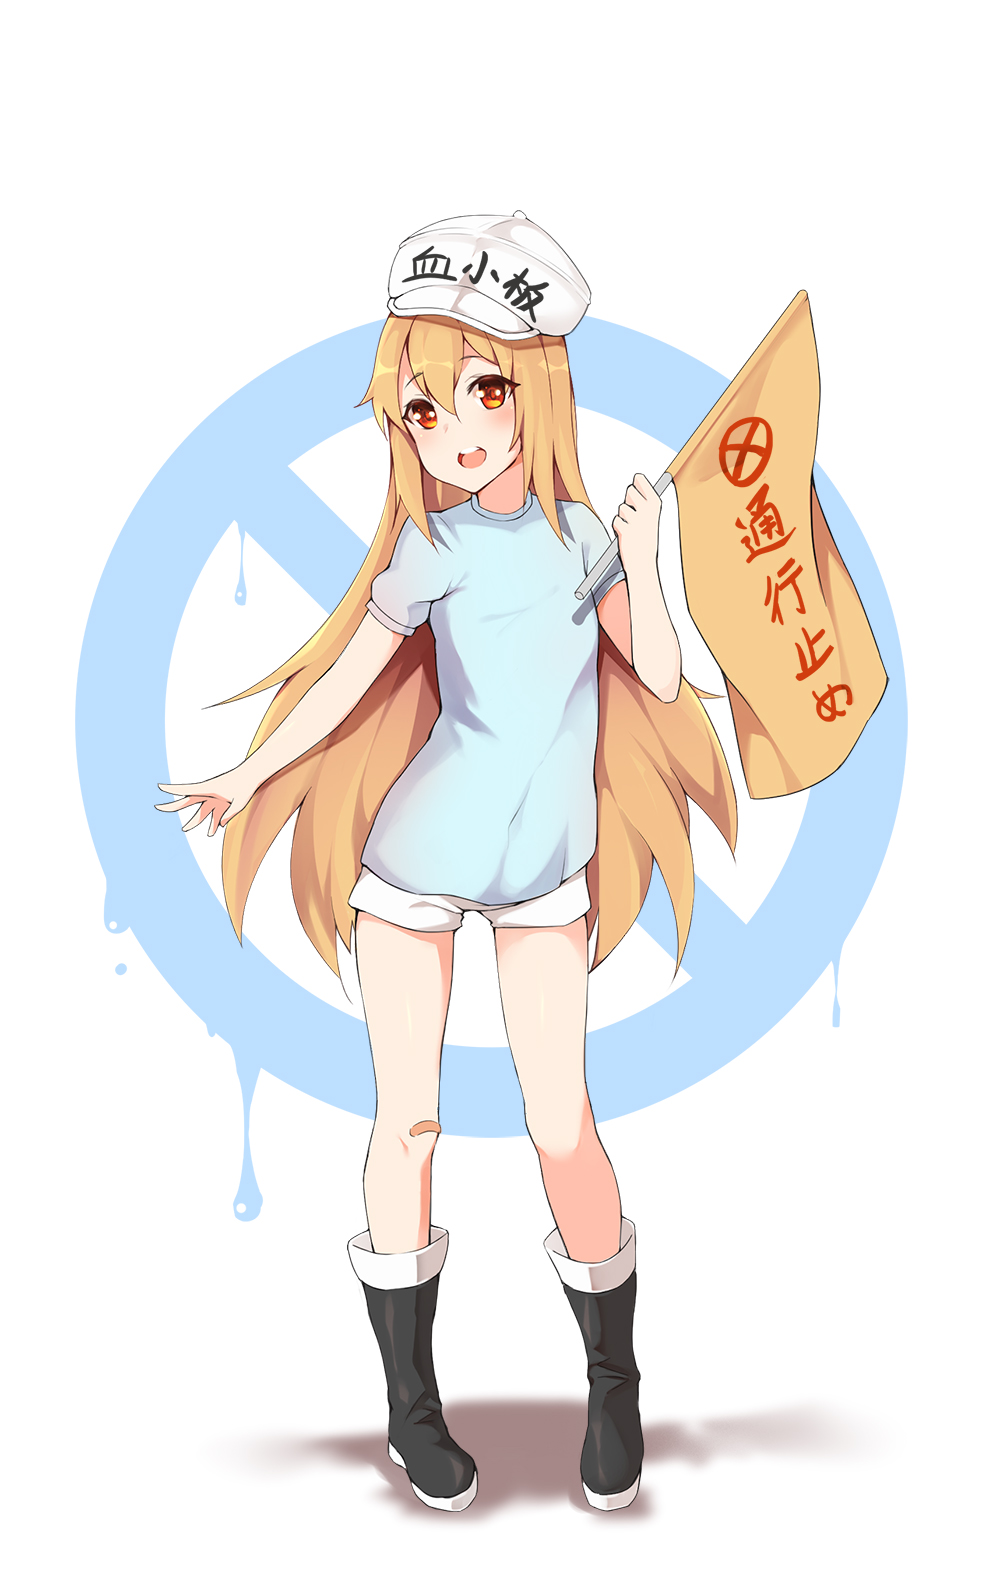 1girl black_footwear blue_shirt boots character_name clothes_writing commentary_request flag flat_cap full_body hat hataraku_saibou highres holding holding_flag light_brown_hair long_hair meng_ge_3_(565571710) no_entry_sign open_mouth platelet_(hataraku_saibou) red_eyes round_teeth shadow shirt short_shorts short_sleeves shorts solo standing teeth upper_teeth very_long_hair white_background white_hat white_shorts